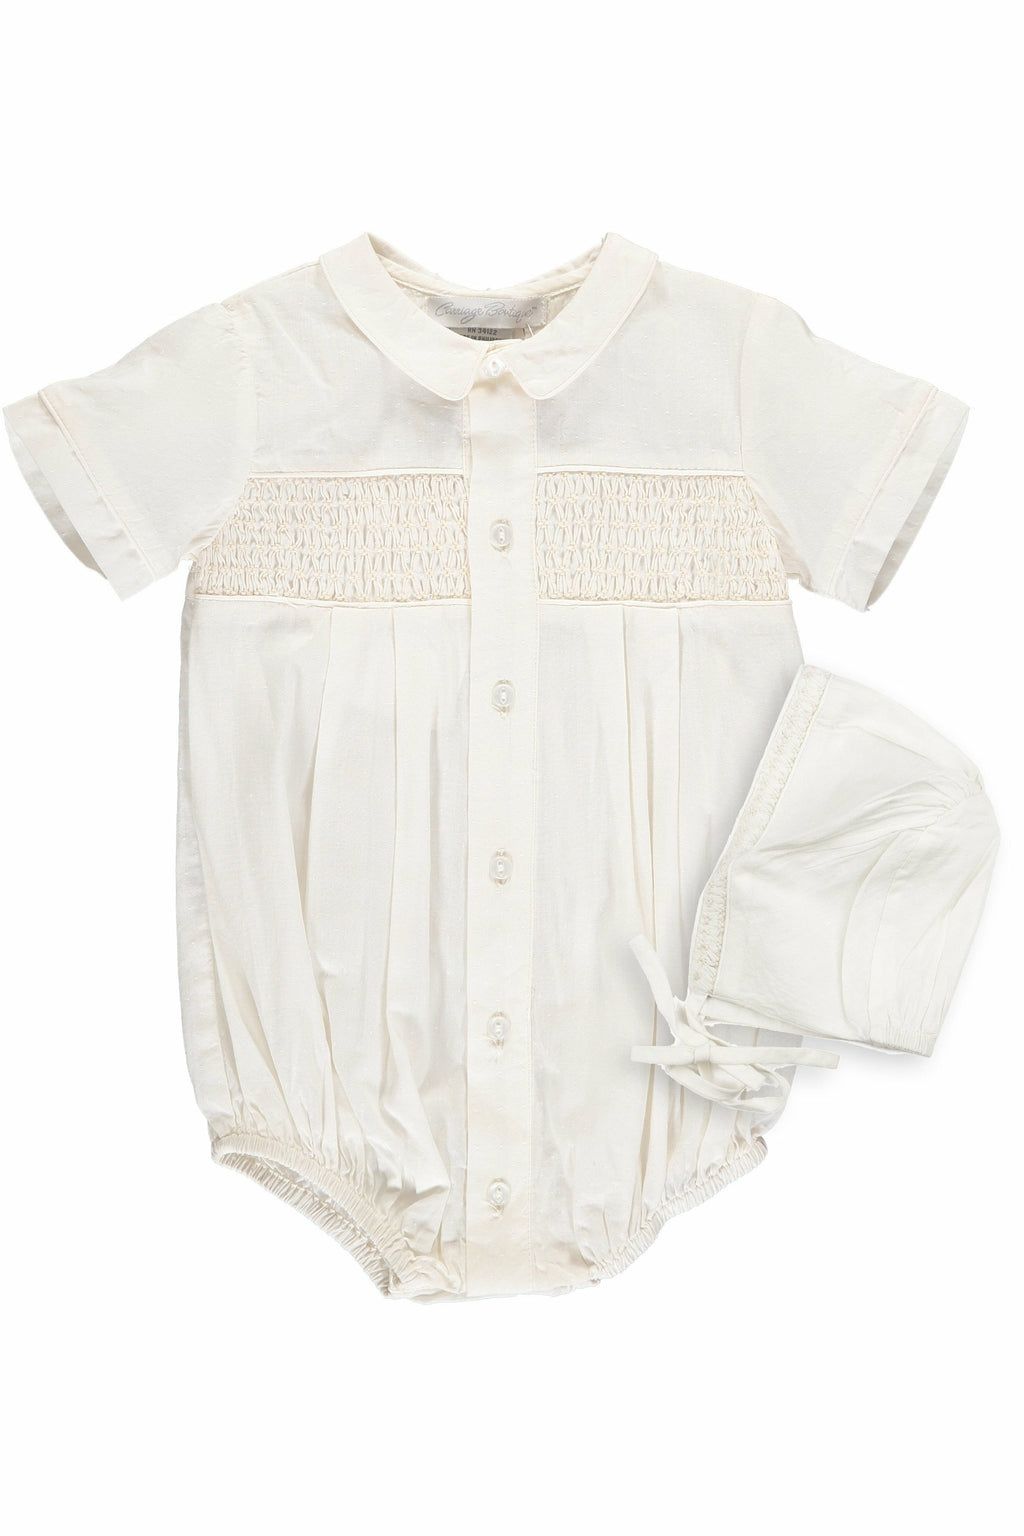 Baby Boys Hand Smocked Special Occasion Creeper with Bonnet - Ivory